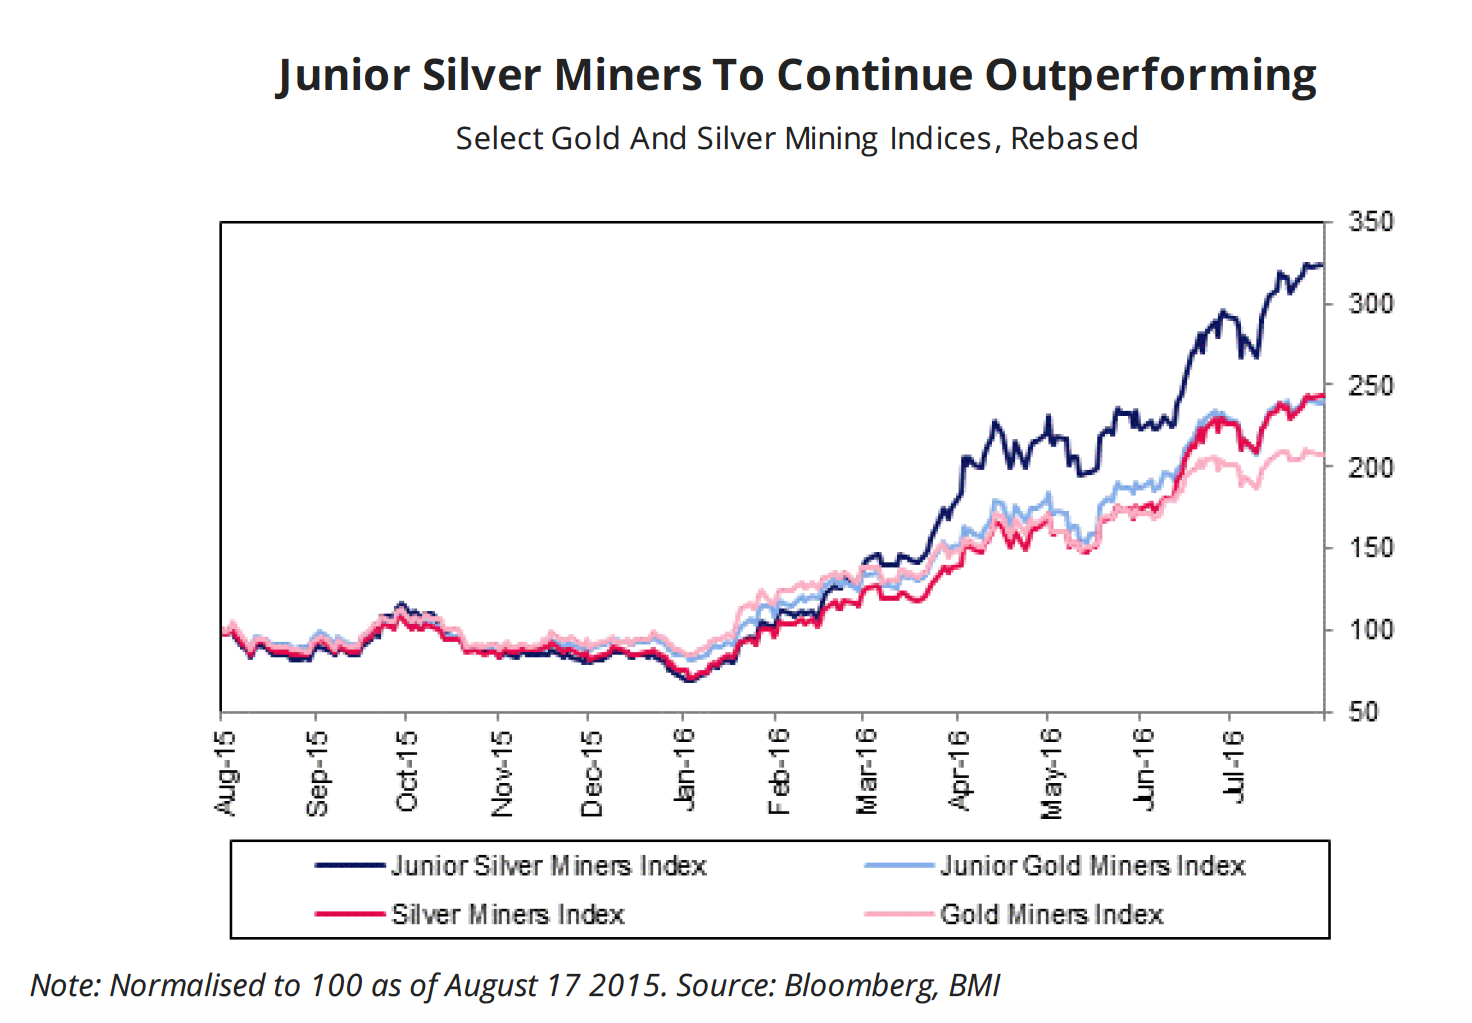 Junior Silver Miners To Continue Outperforming